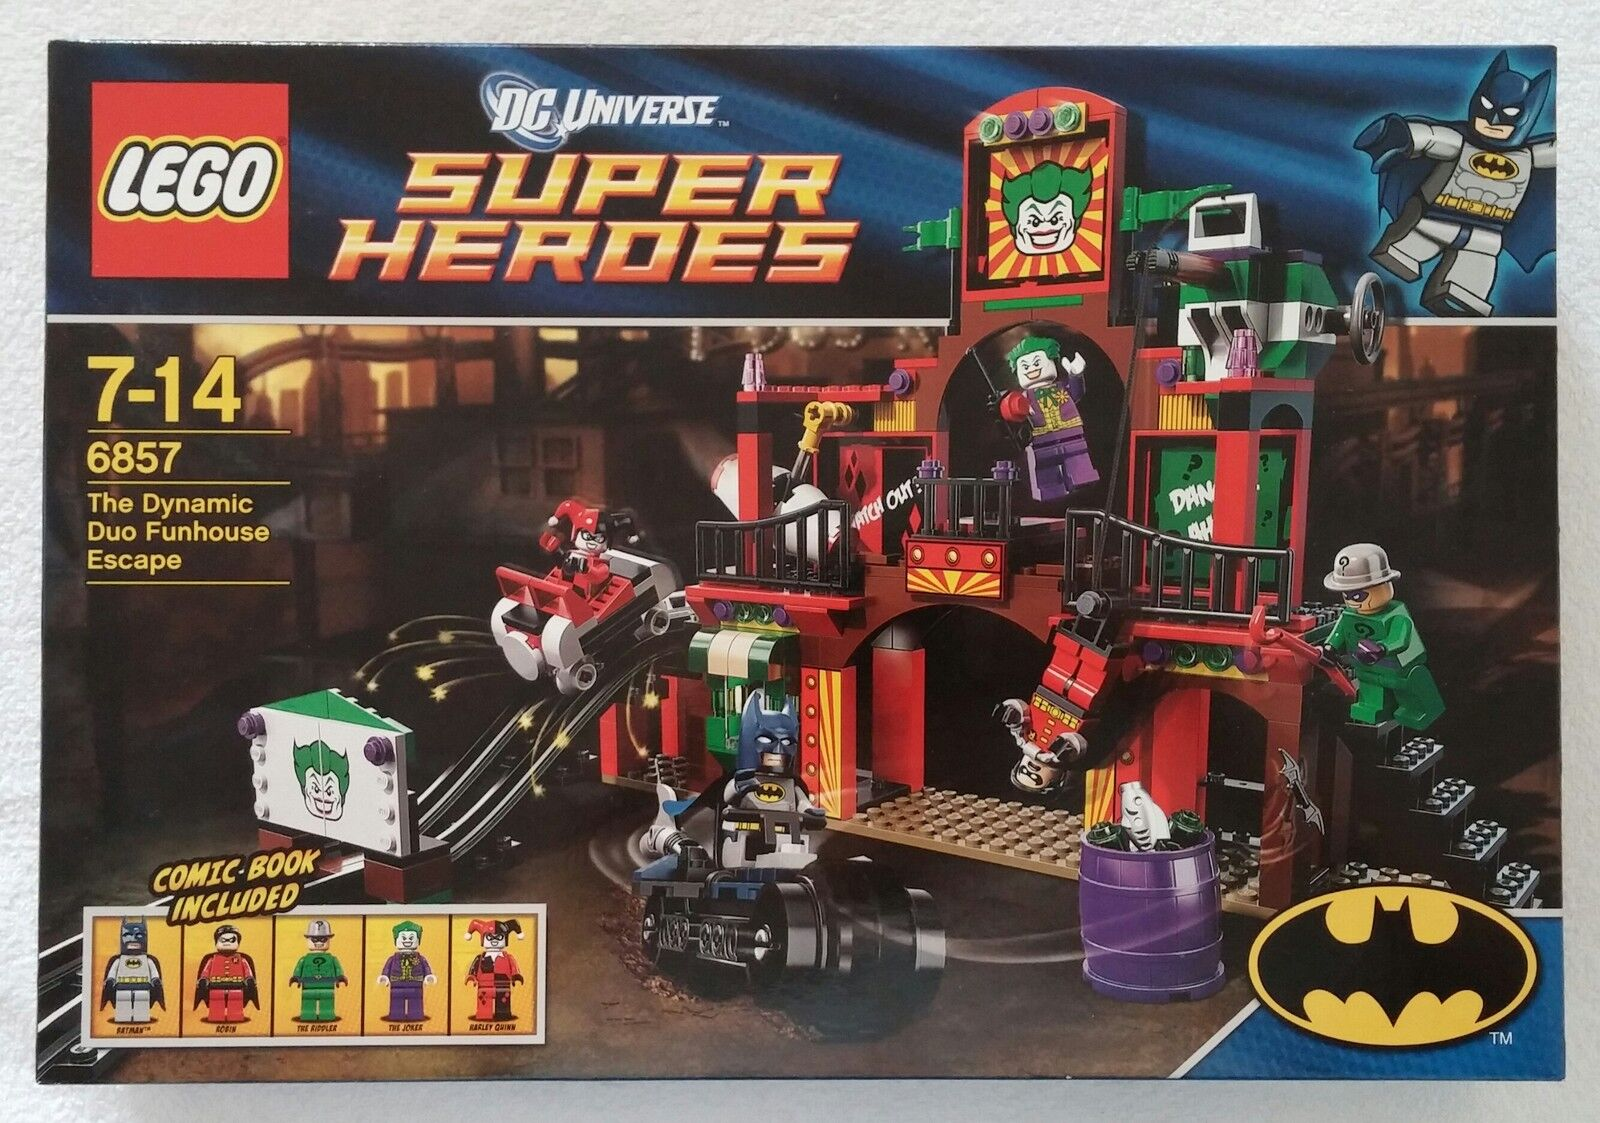 LEGO ® DC Super Heroes Batman ™ 6857 The Dynamic Duo Funhouse Escape NOUVEAU & NEUF dans sa boîte New